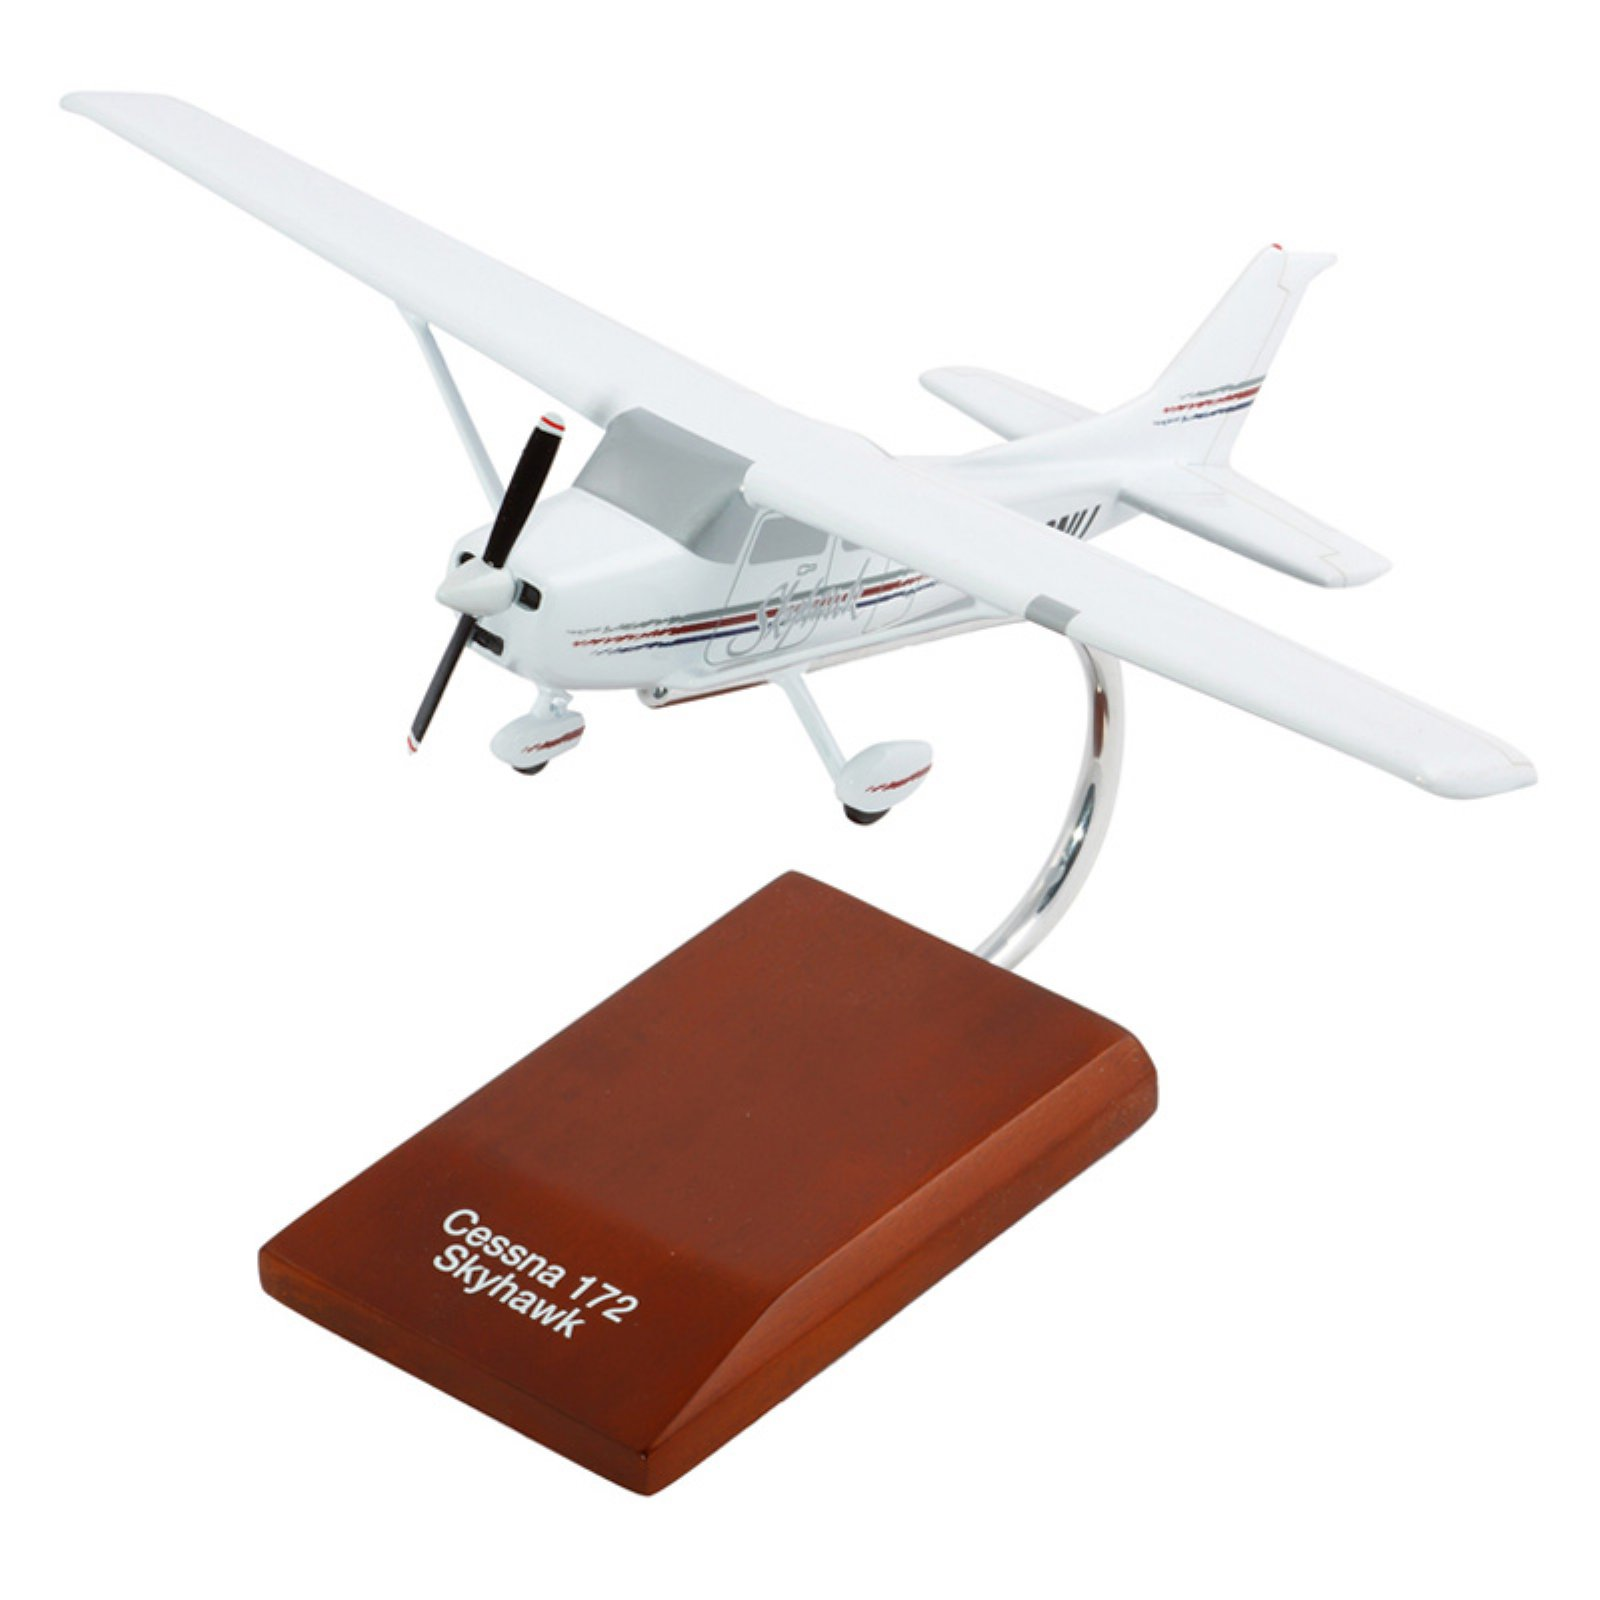 Daron Worldwide Cessna Model 172 Modern Skyhawk Model Airplane by Toys and Models Corp